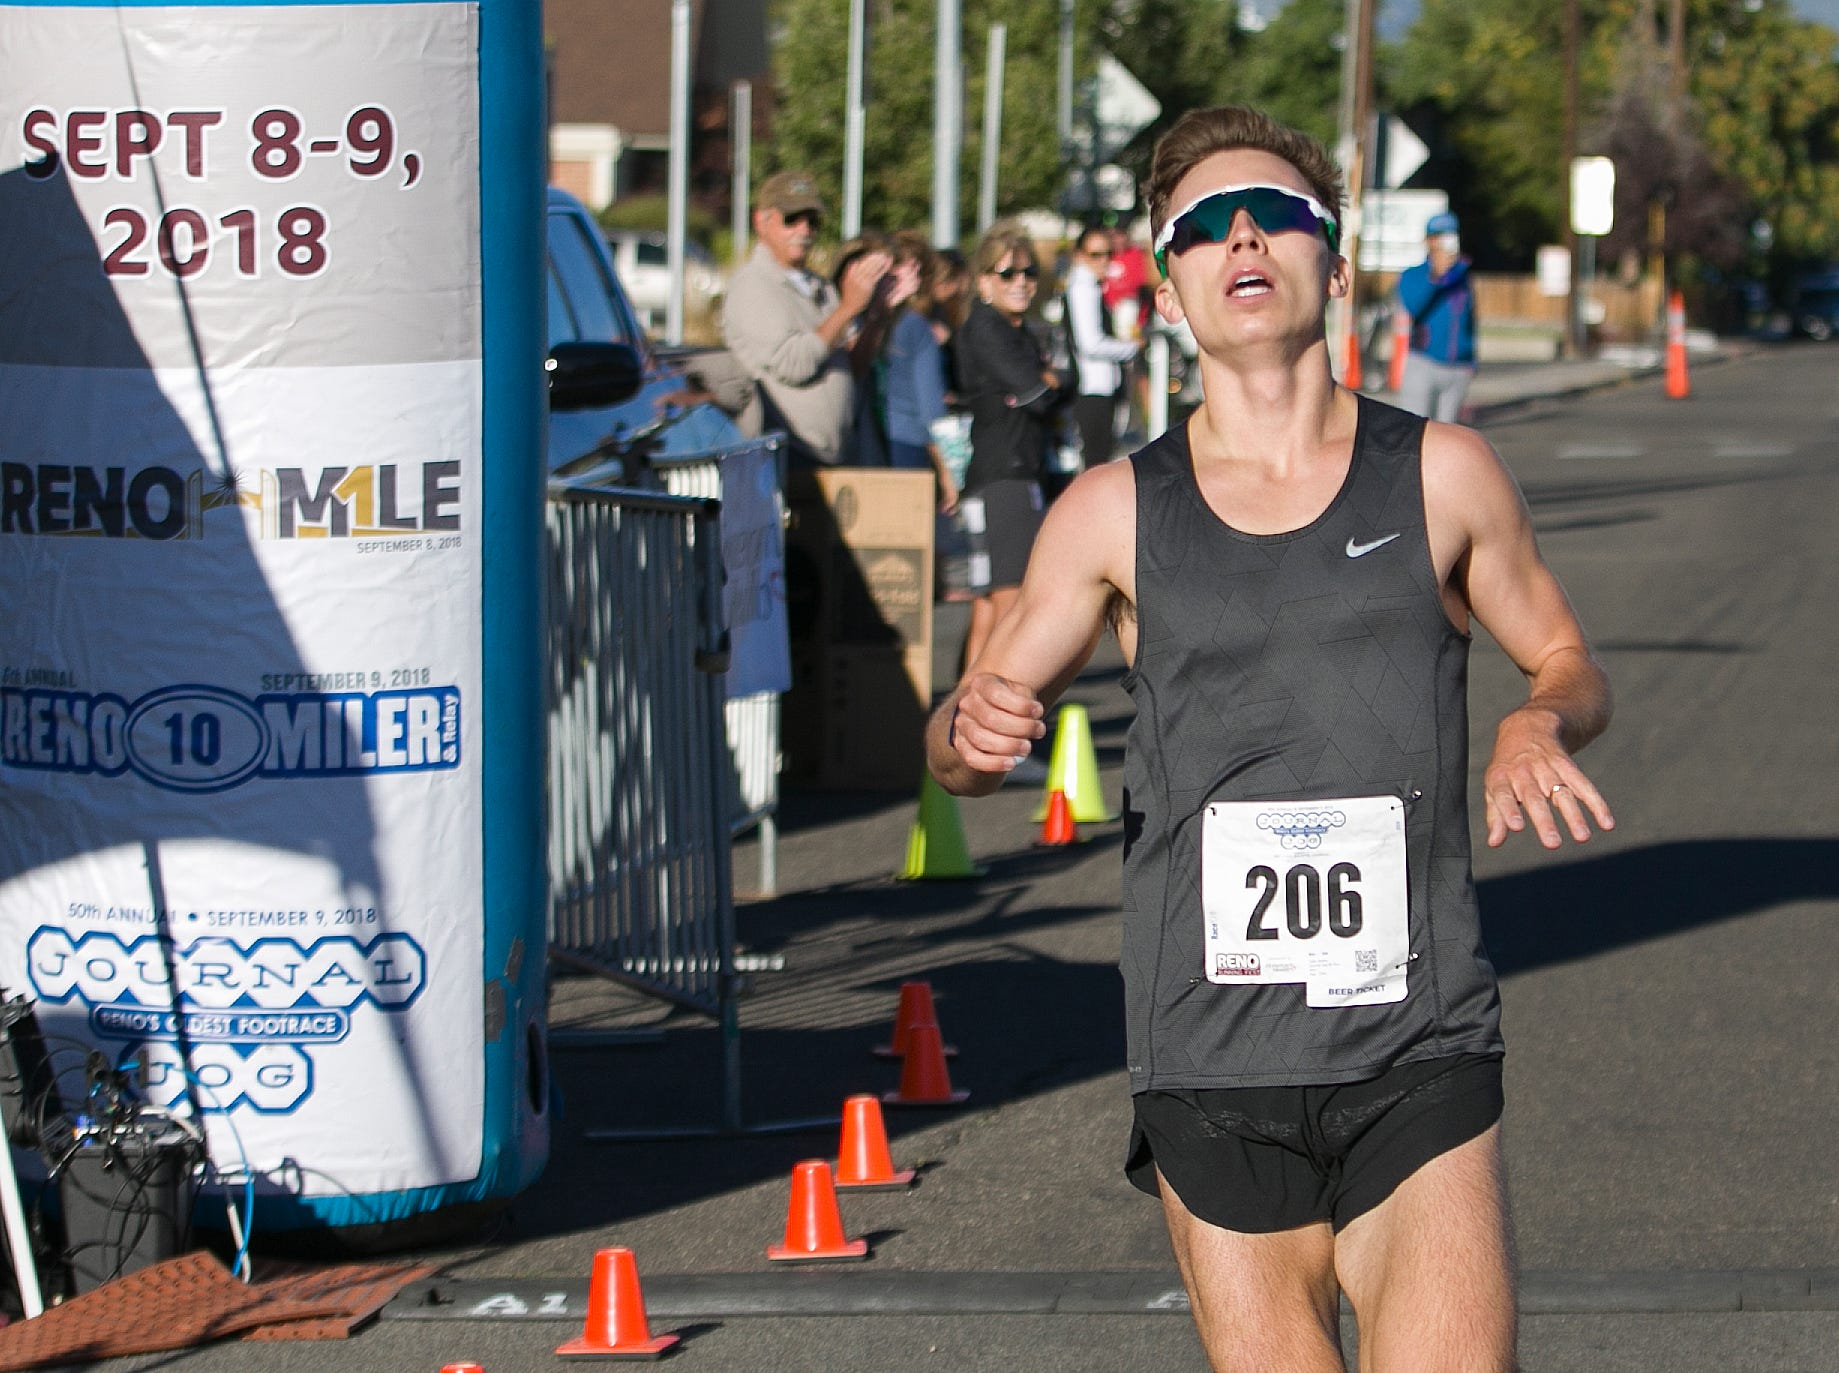 Tyler Sickler crosses the finish line to win the 50th Annual Journal Jog in Reno, Nevada on Sunday, September 9, 2018.